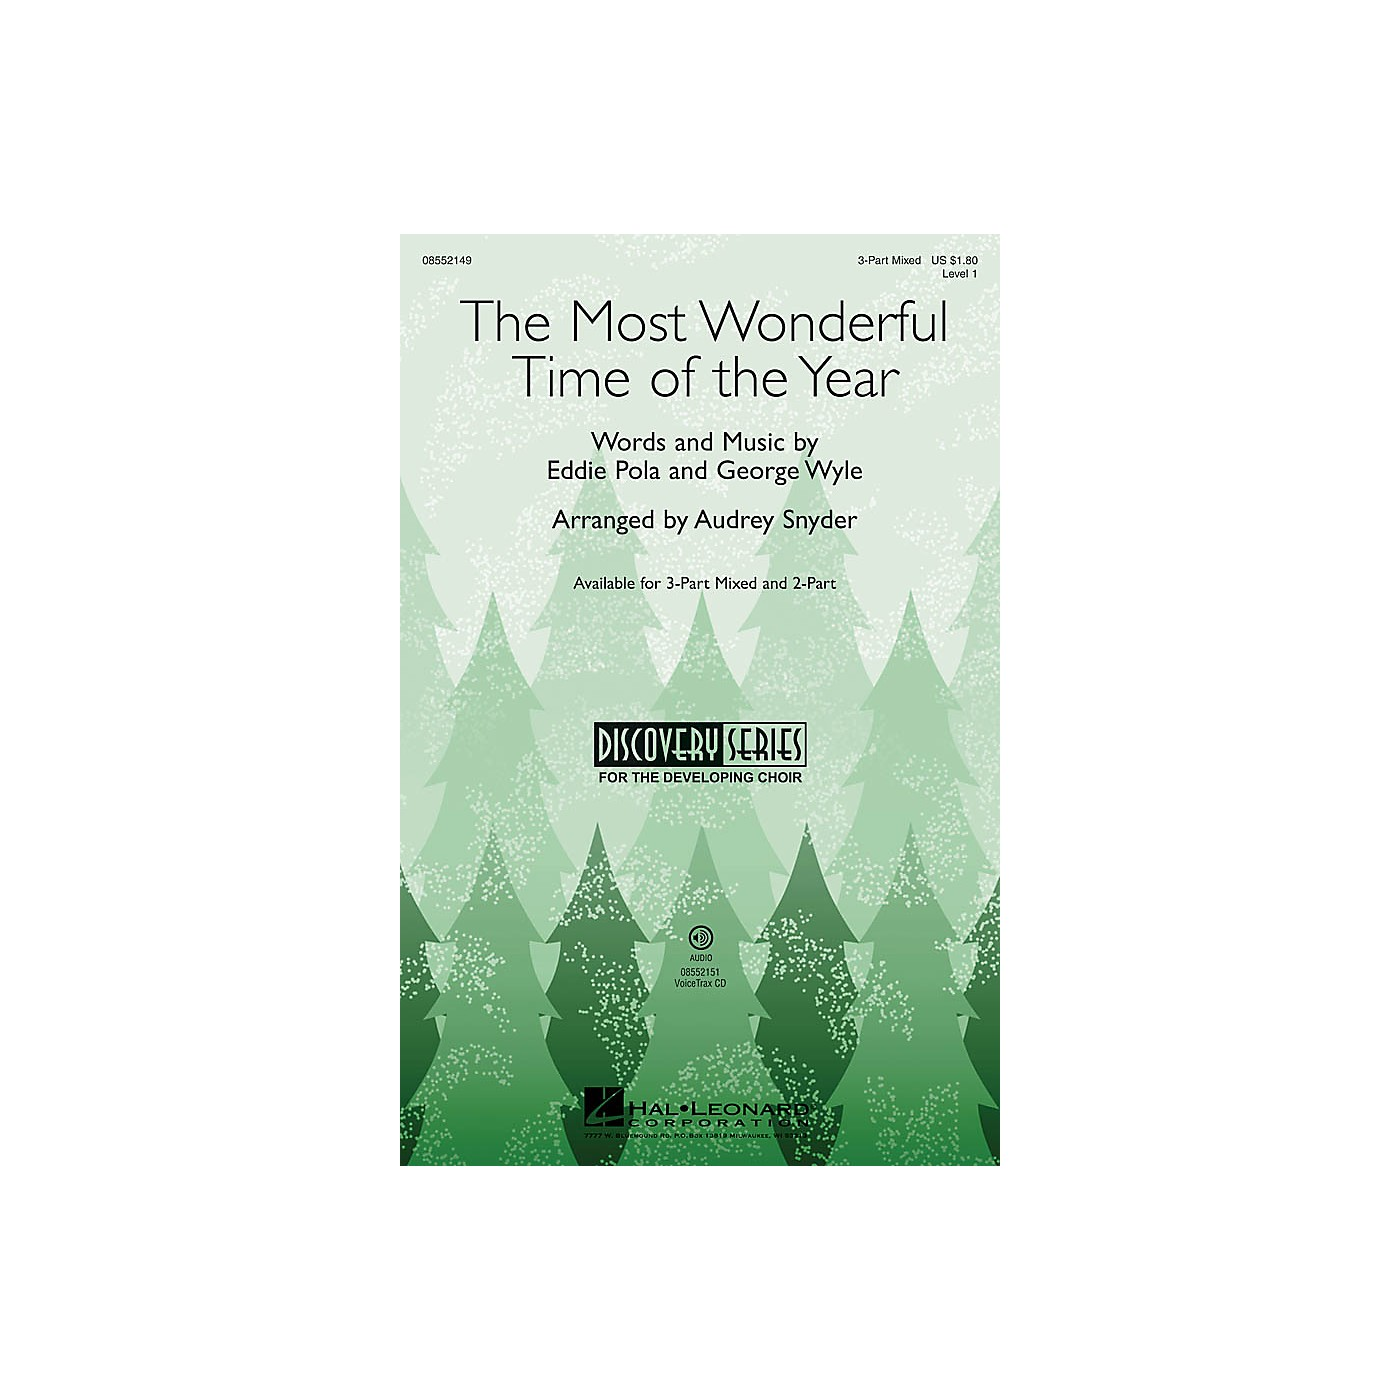 Hal Leonard The Most Wonderful Time of the Year (Discovery Level 1) VoiceTrax CD Arranged by Audrey Snyder thumbnail